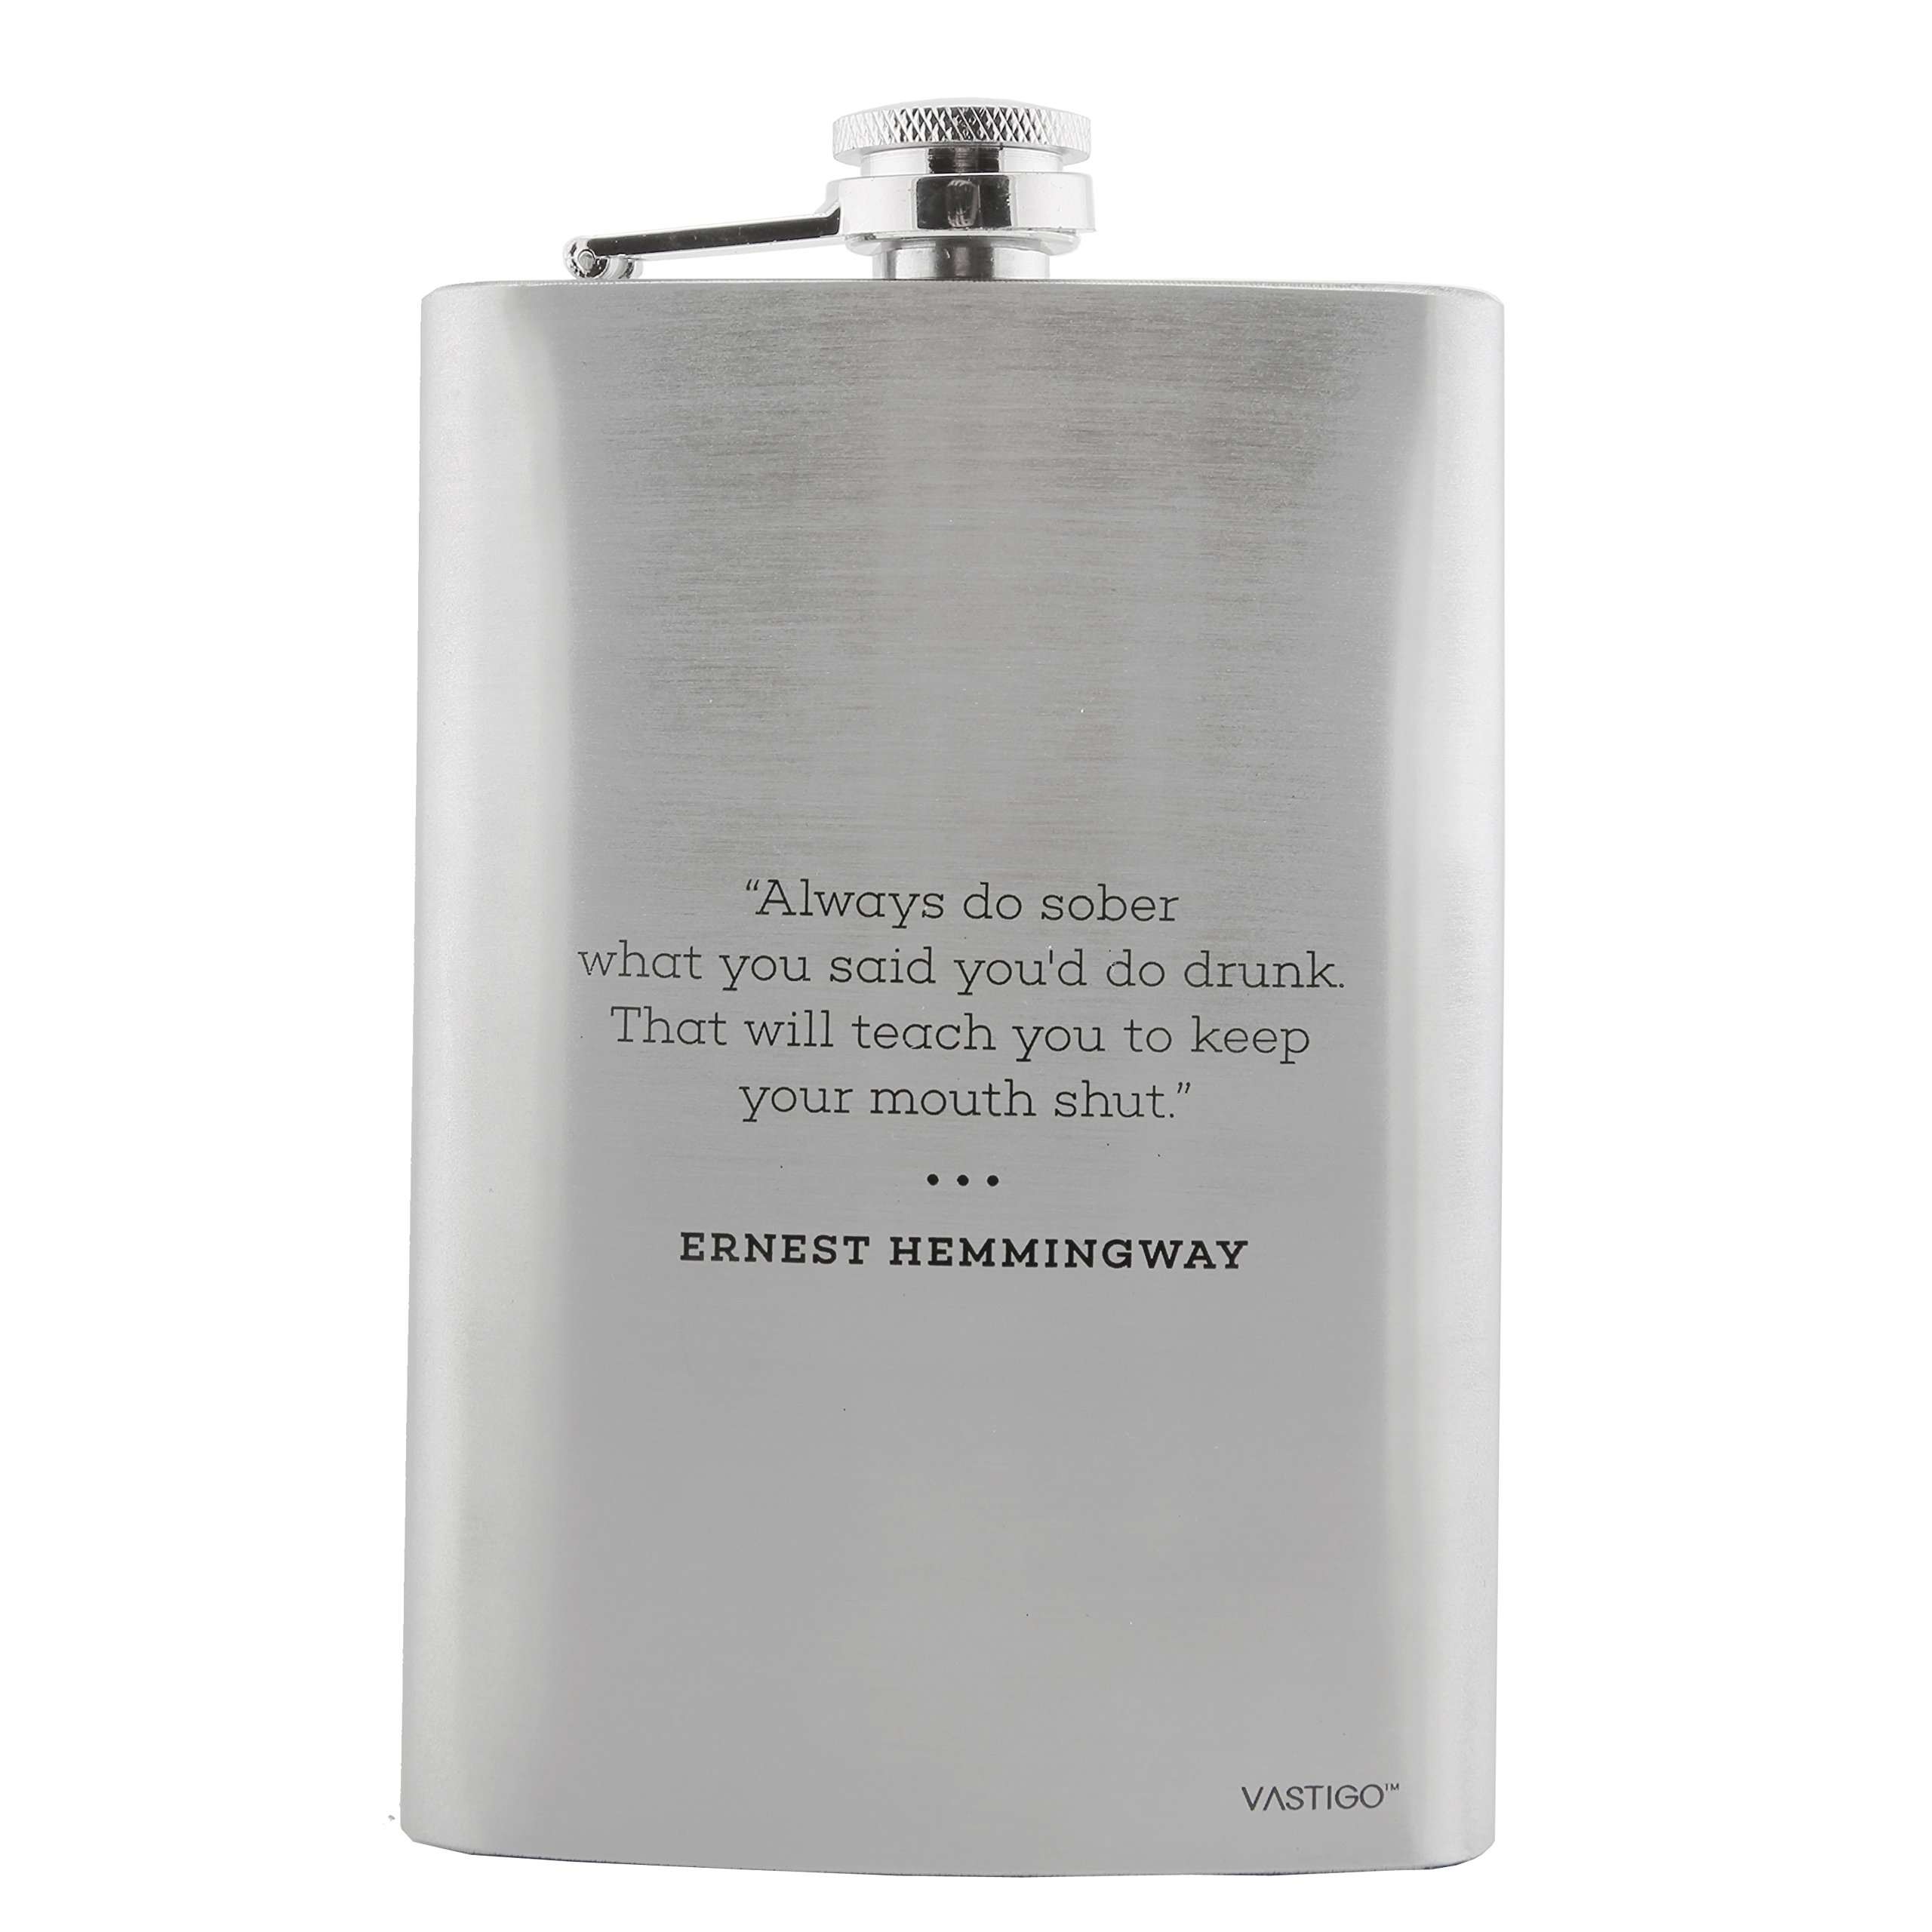 Vastigo Stainless Steel 8 oz Flask for Men w/Ernest Hemingway Quote also included Free Funnel and Gift Box – Stainless